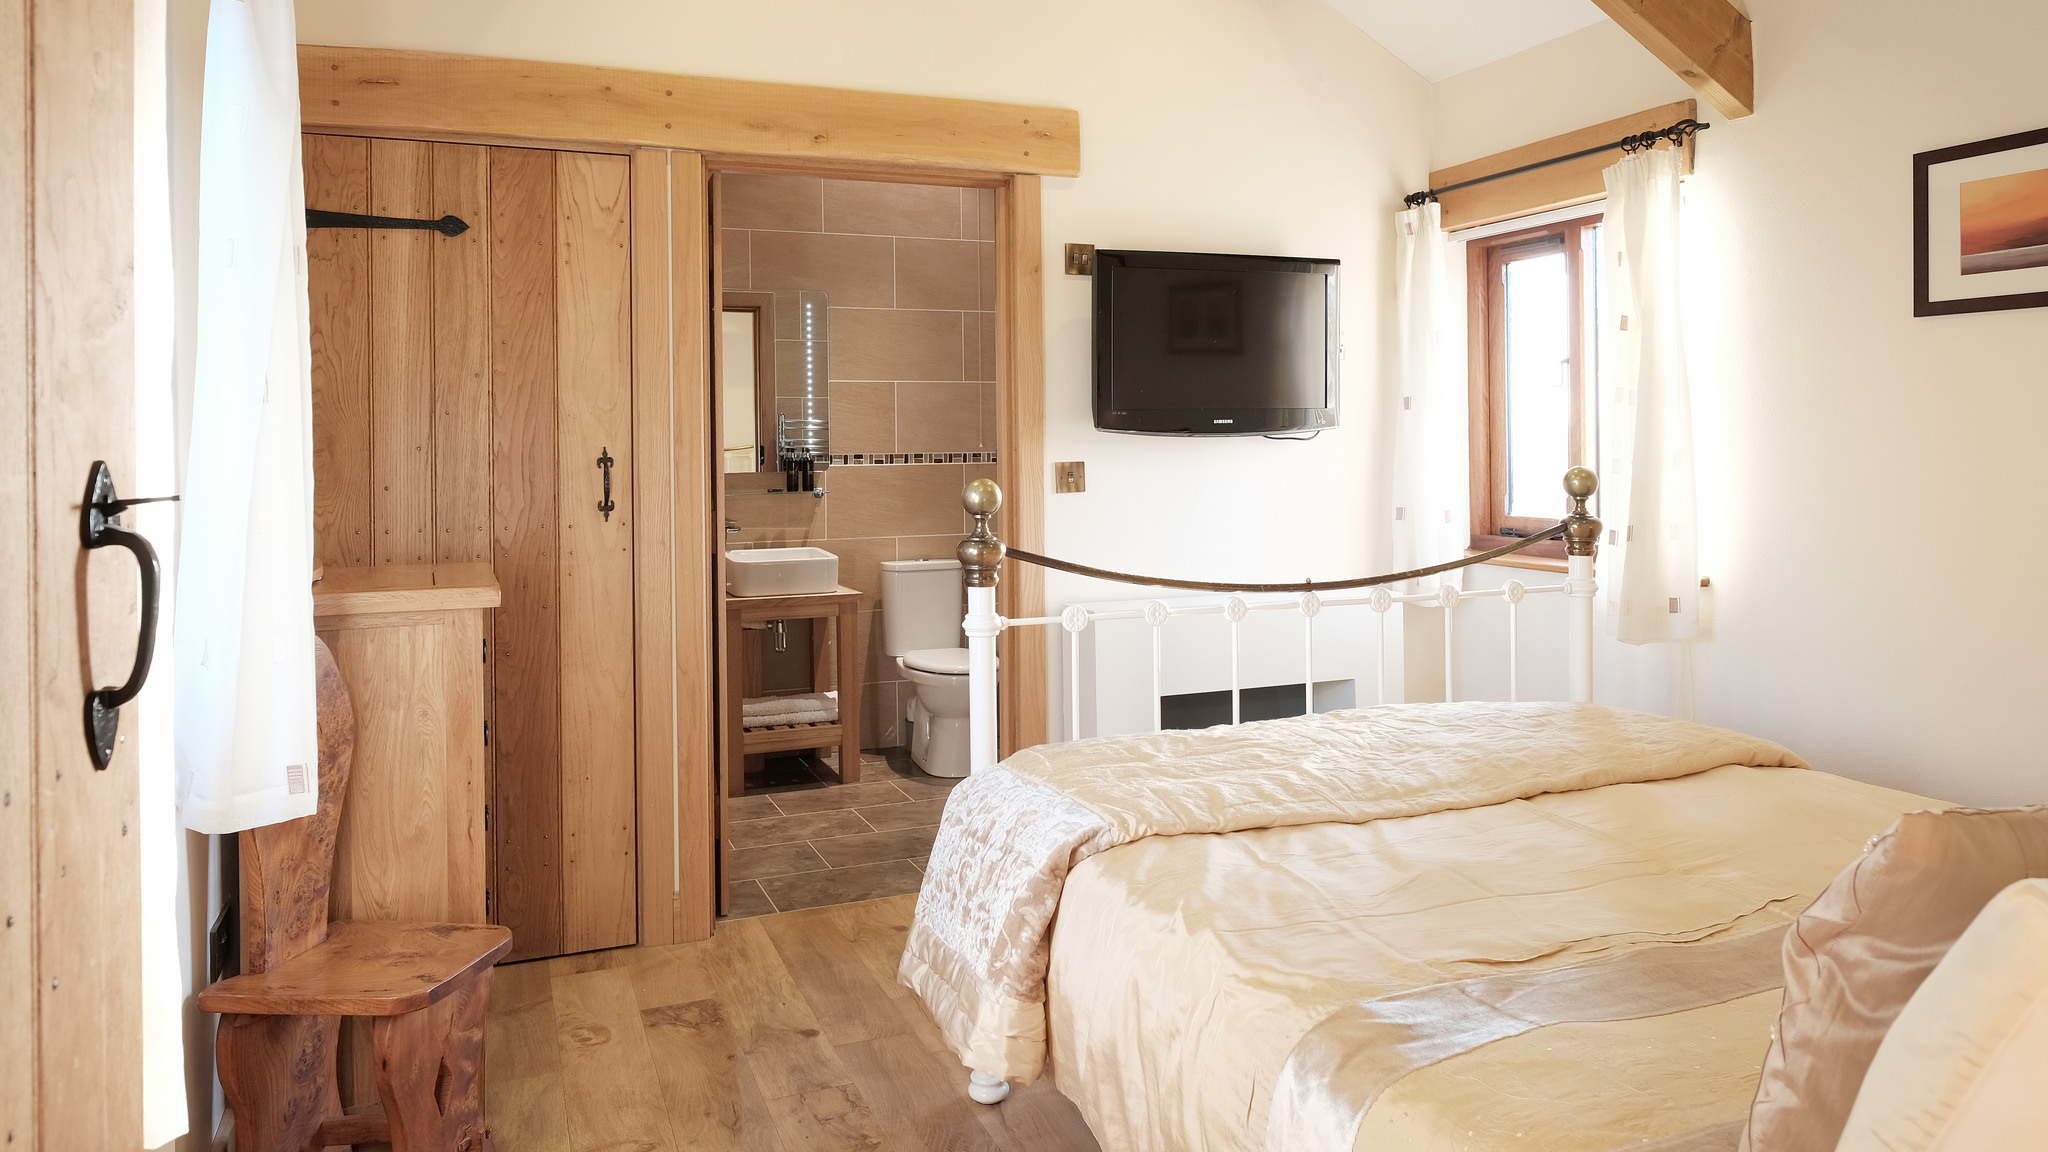 Bedroom with king size bed and en-suite bathroom